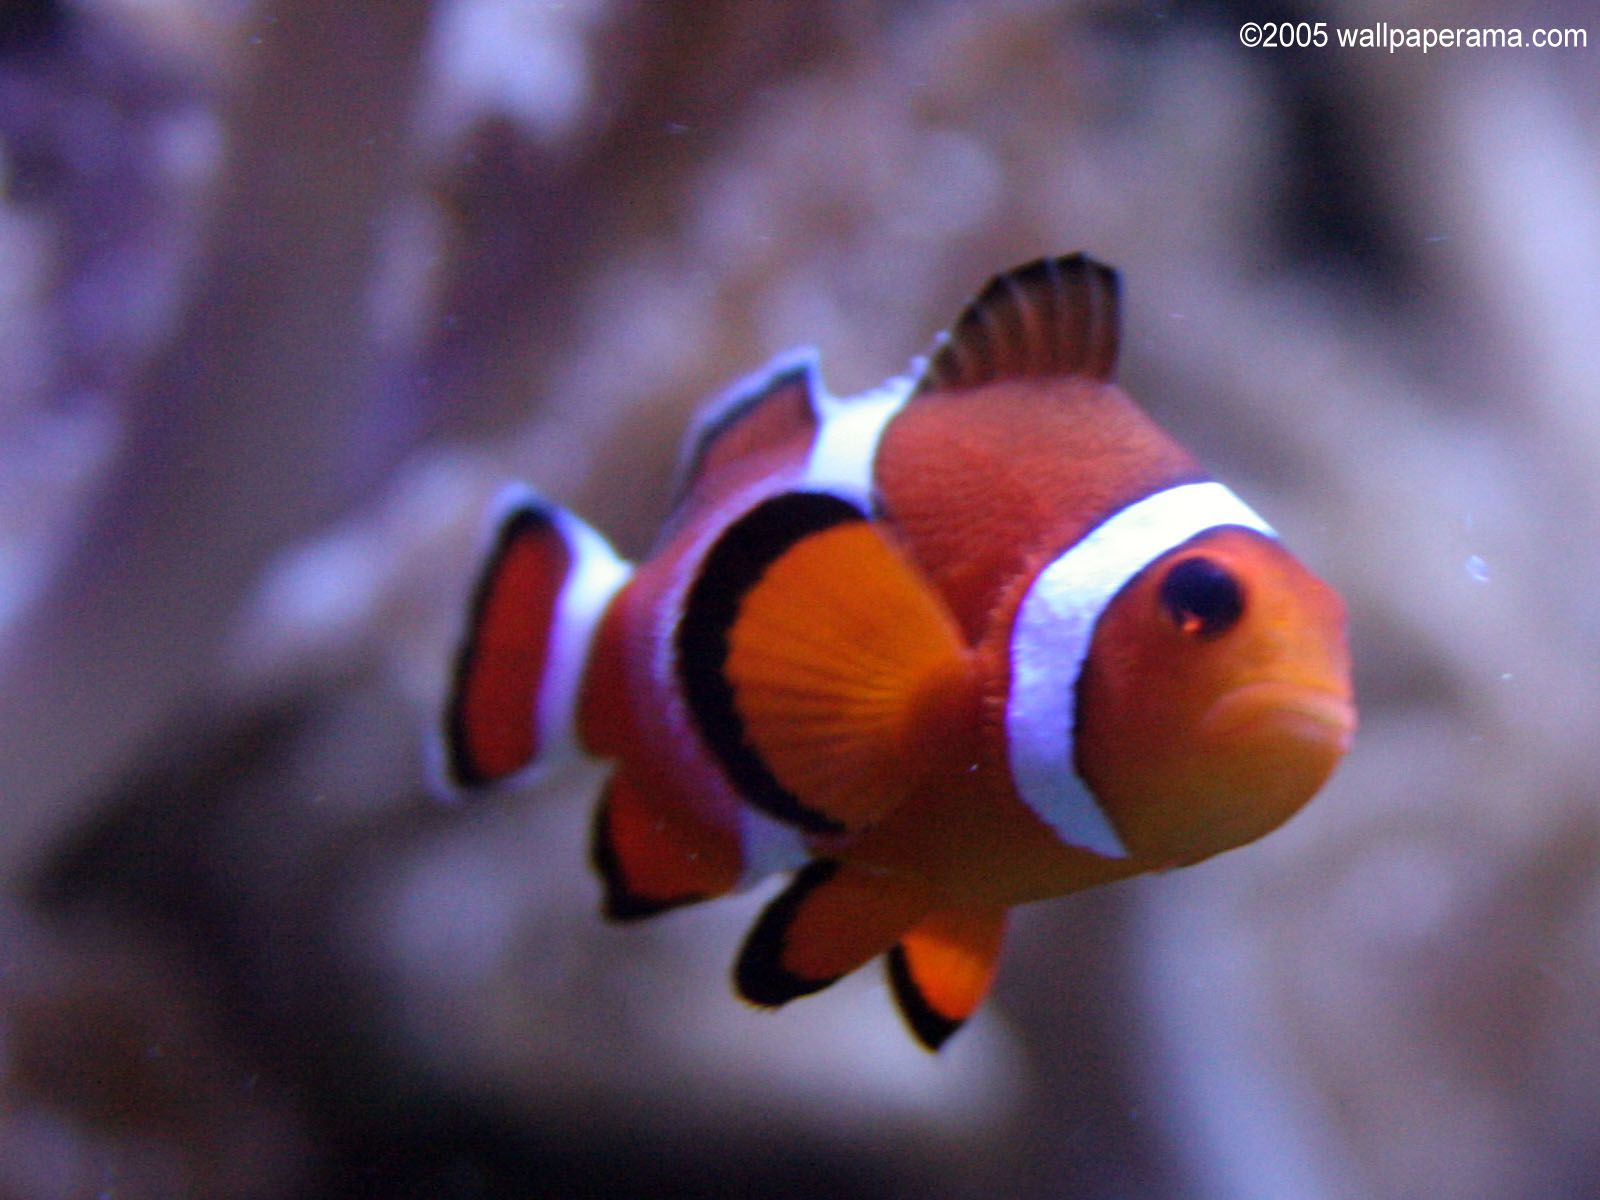 Clownfish Wallpapers Android Apps on Google Play | r72 Wallpapers HD ...